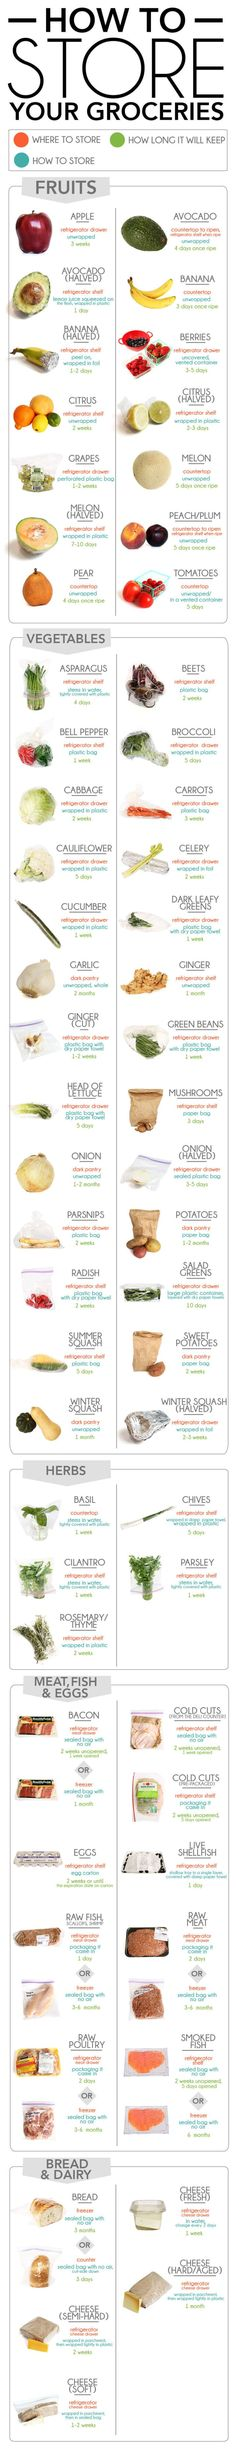 It's hard to eat clean when your food is spoiled. Keep it fresh and safe with this chart.And for even more tips and tricks for eating healthier all year long, be sure to sign up for the BuzzFeed Food newsletter. Nom nom nom.